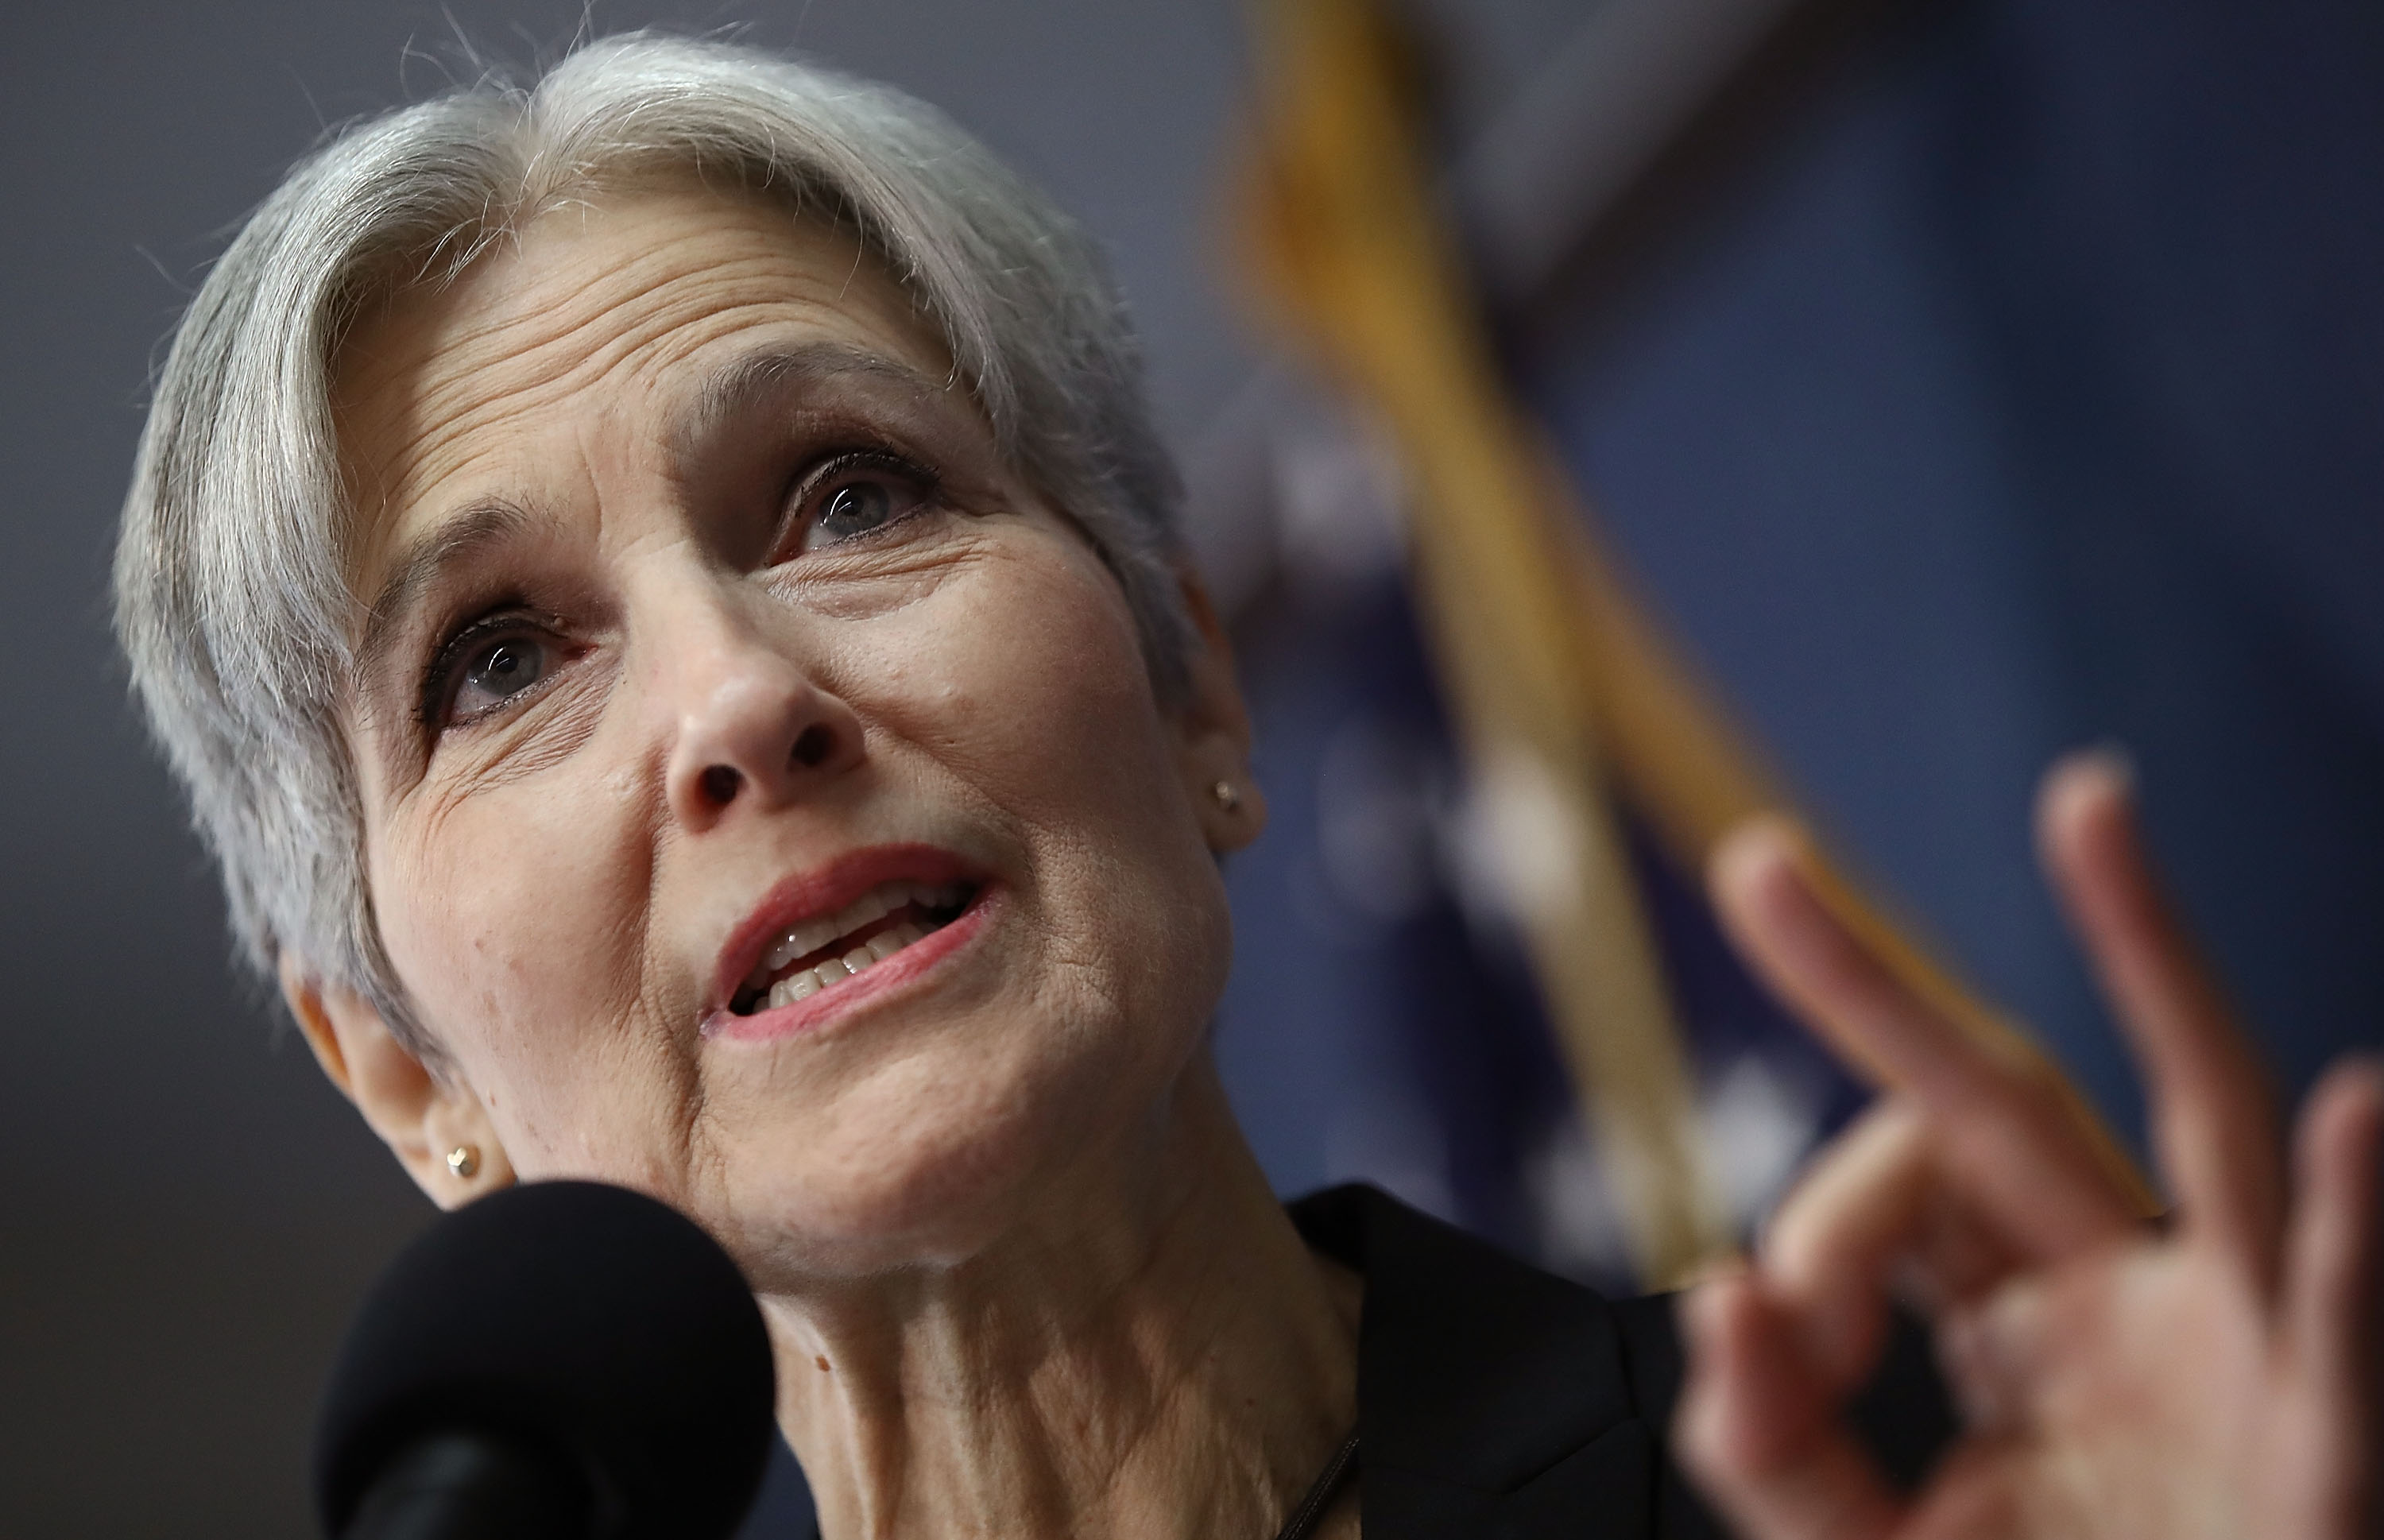 Report: Jill Stein Pays $3.5 million for Wisconsin Recount